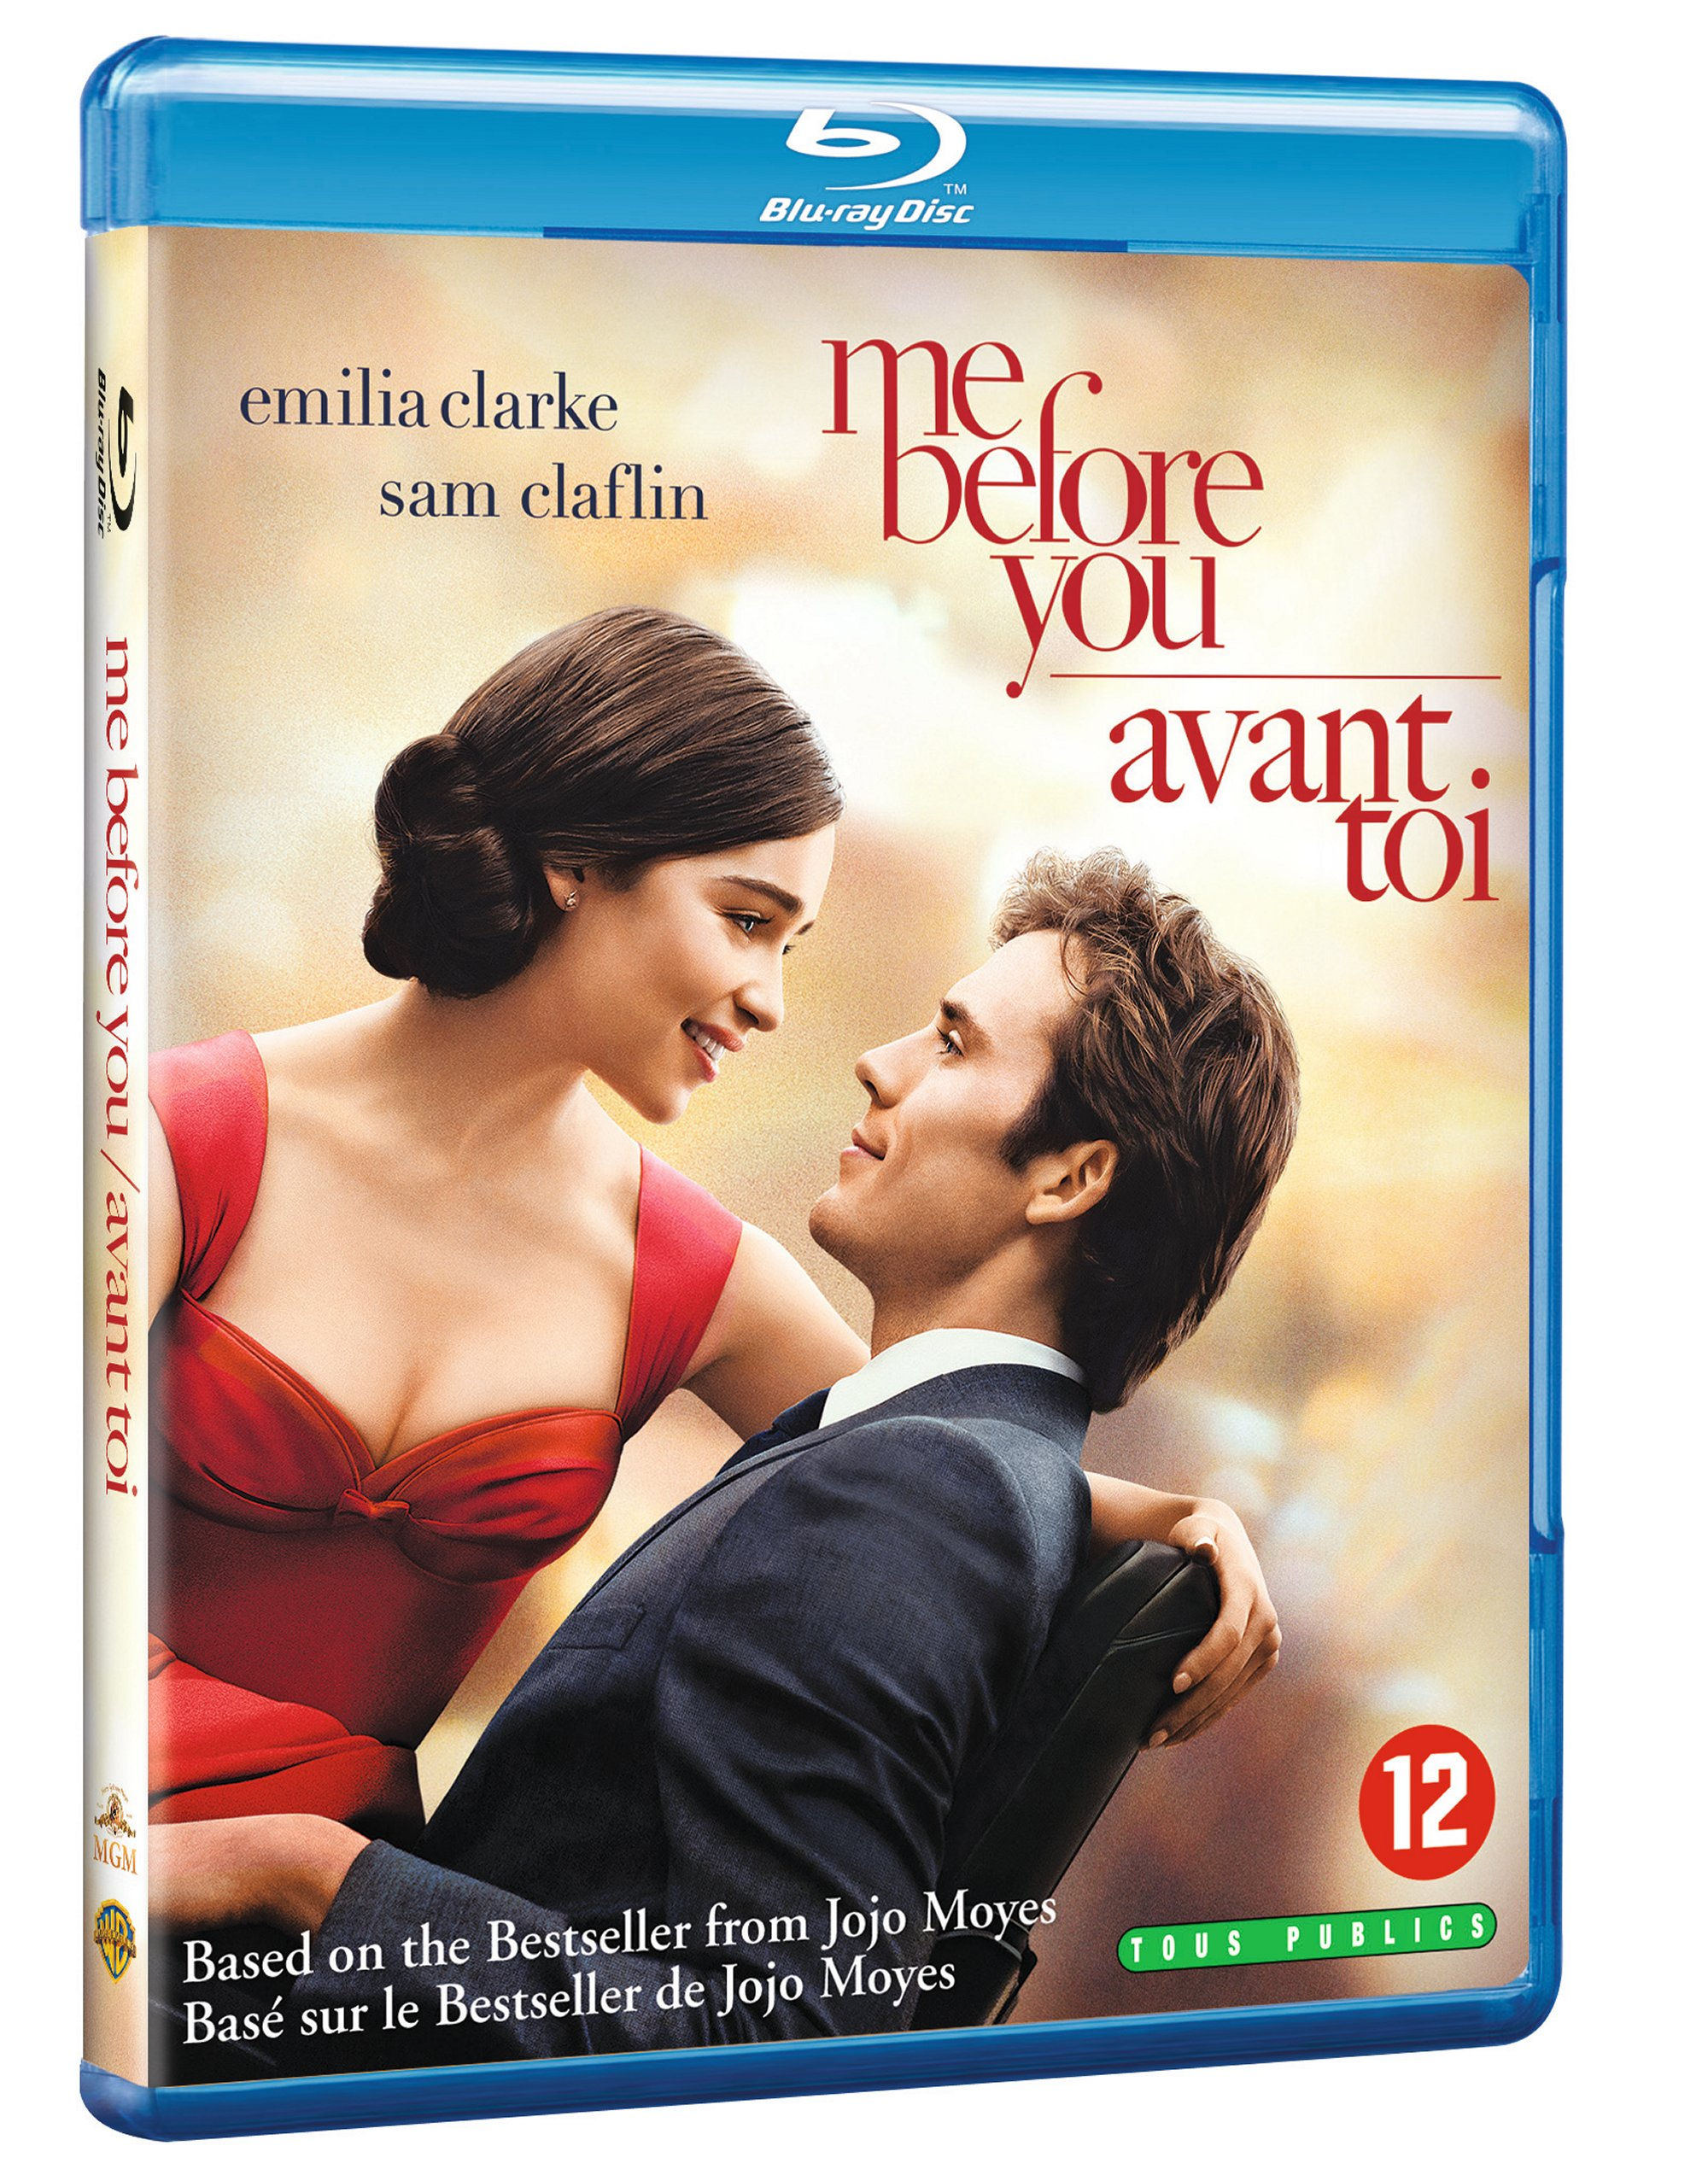 Me Before You 2016 Blu Ray Review De Filmblog